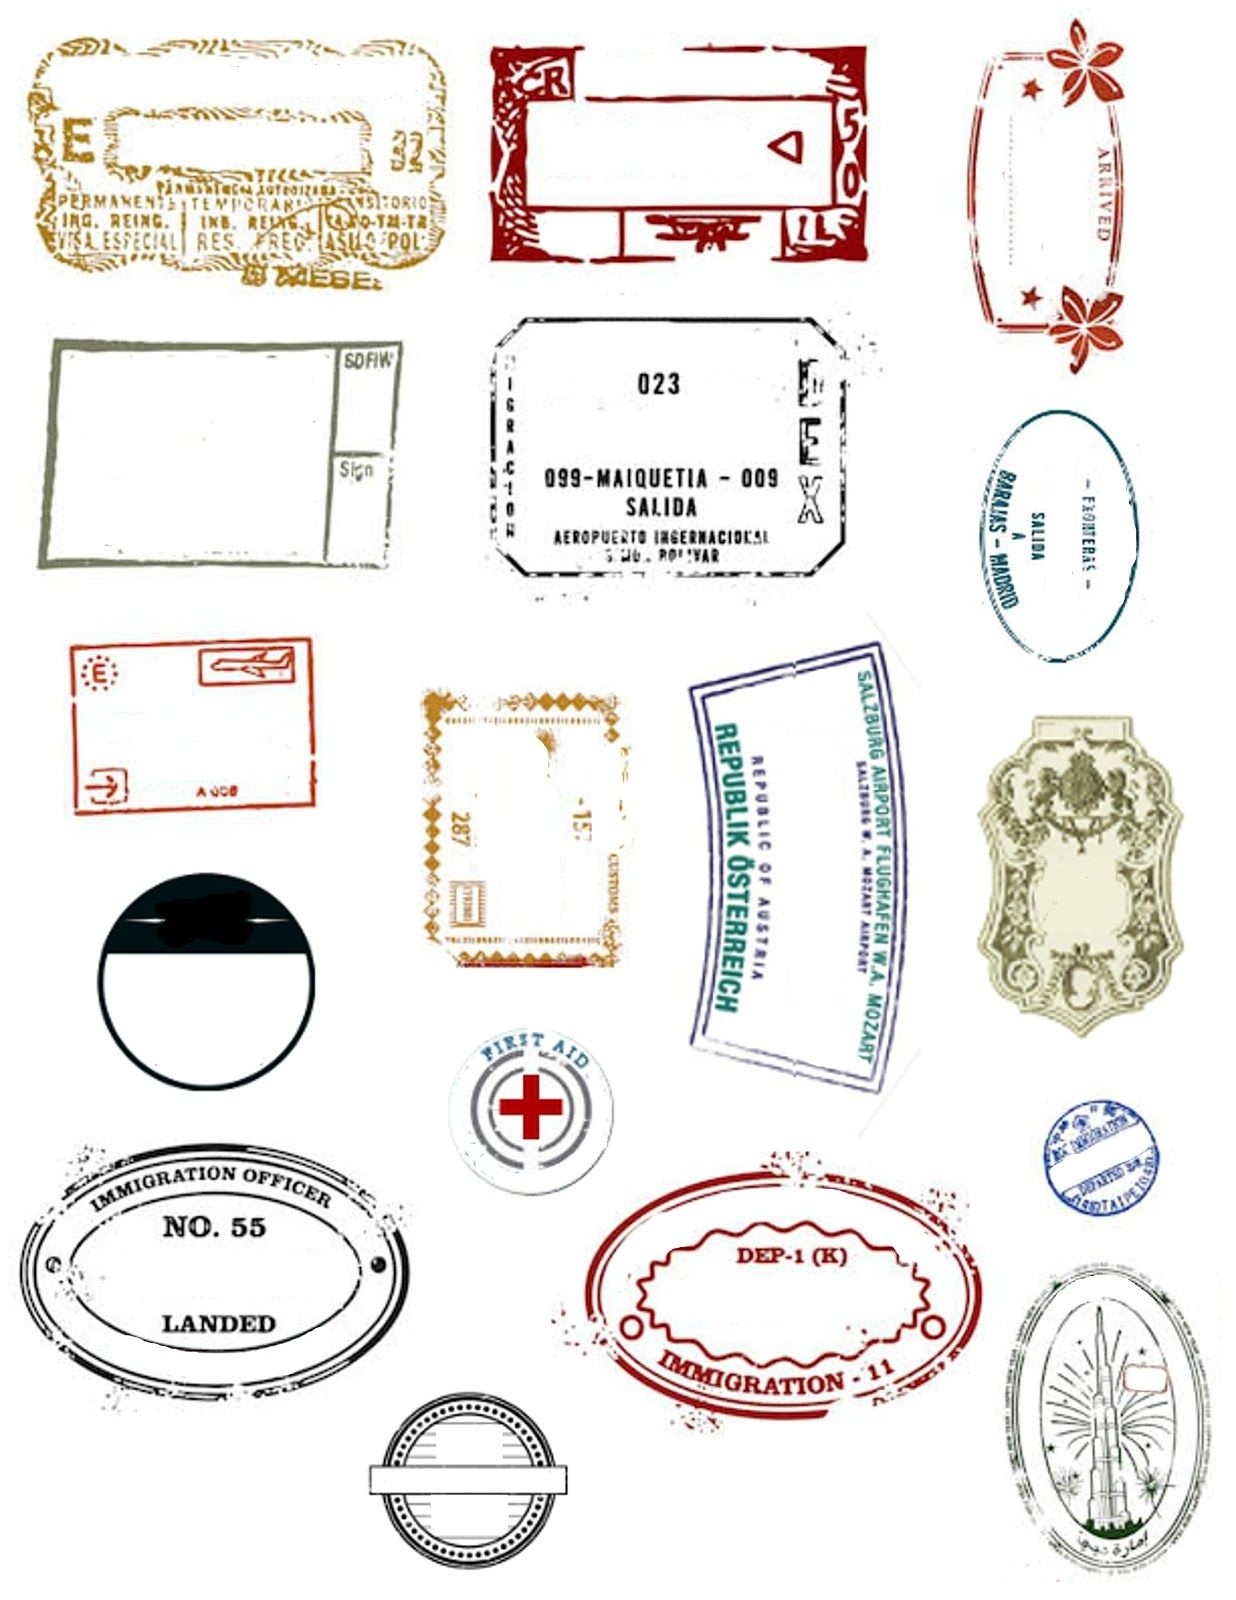 Printable Passports And Customizable Stamps | Yw Camp | Passport - Free Printable Passport Template